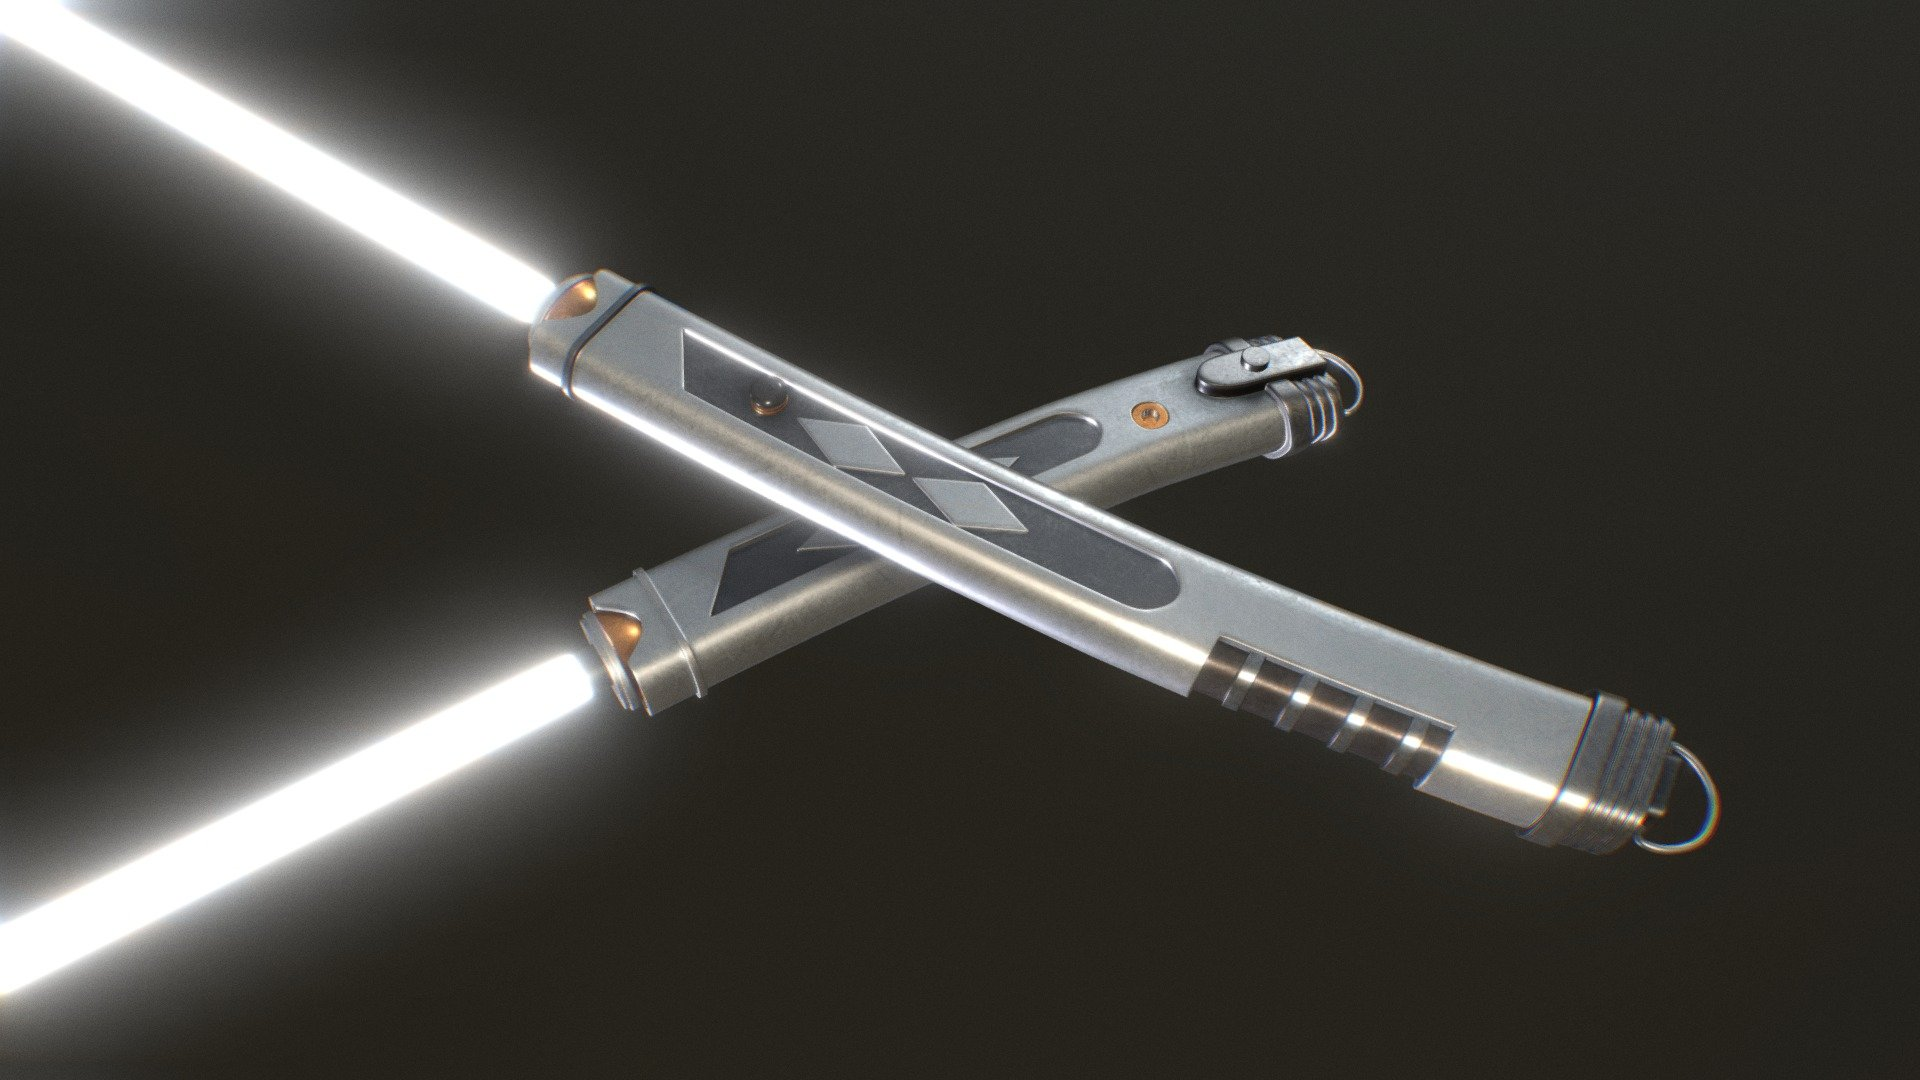 Enterprise Cars For Sale >> Ahsoka Rebels Lightsabers - 3D model by FusSionzZ97 ...